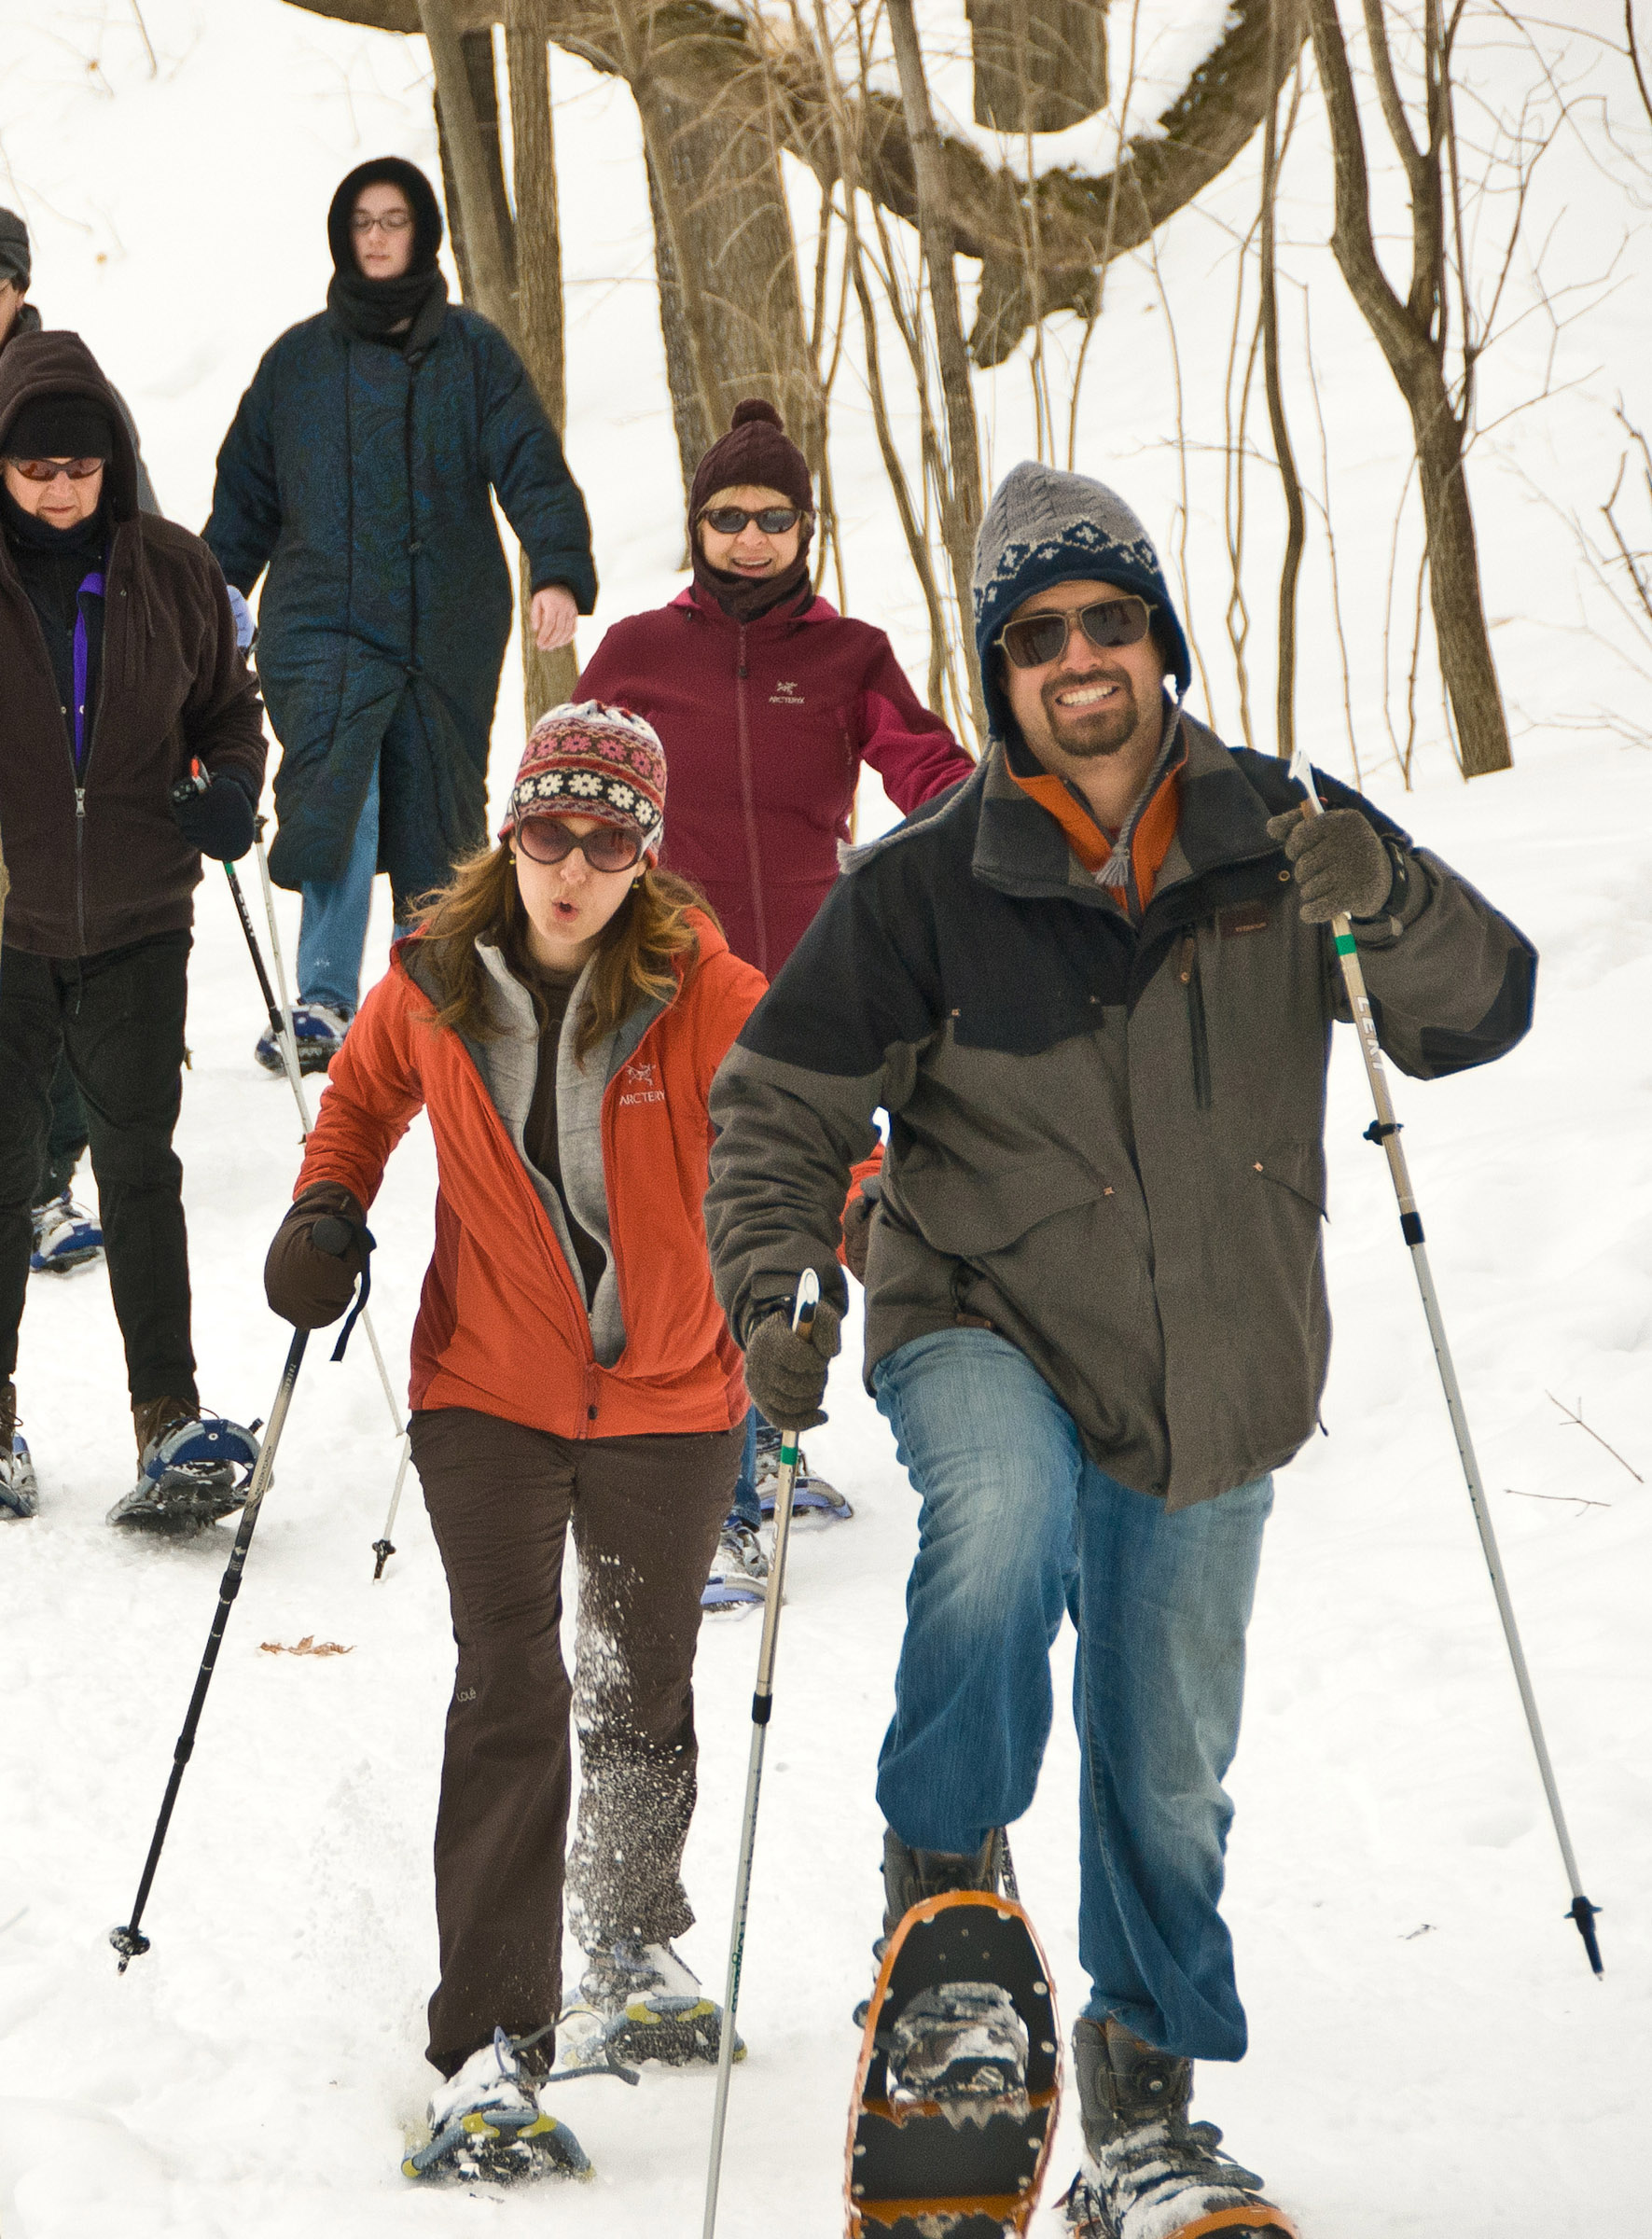 Snowshoeing at the Minnesota Landscape Arboretum.